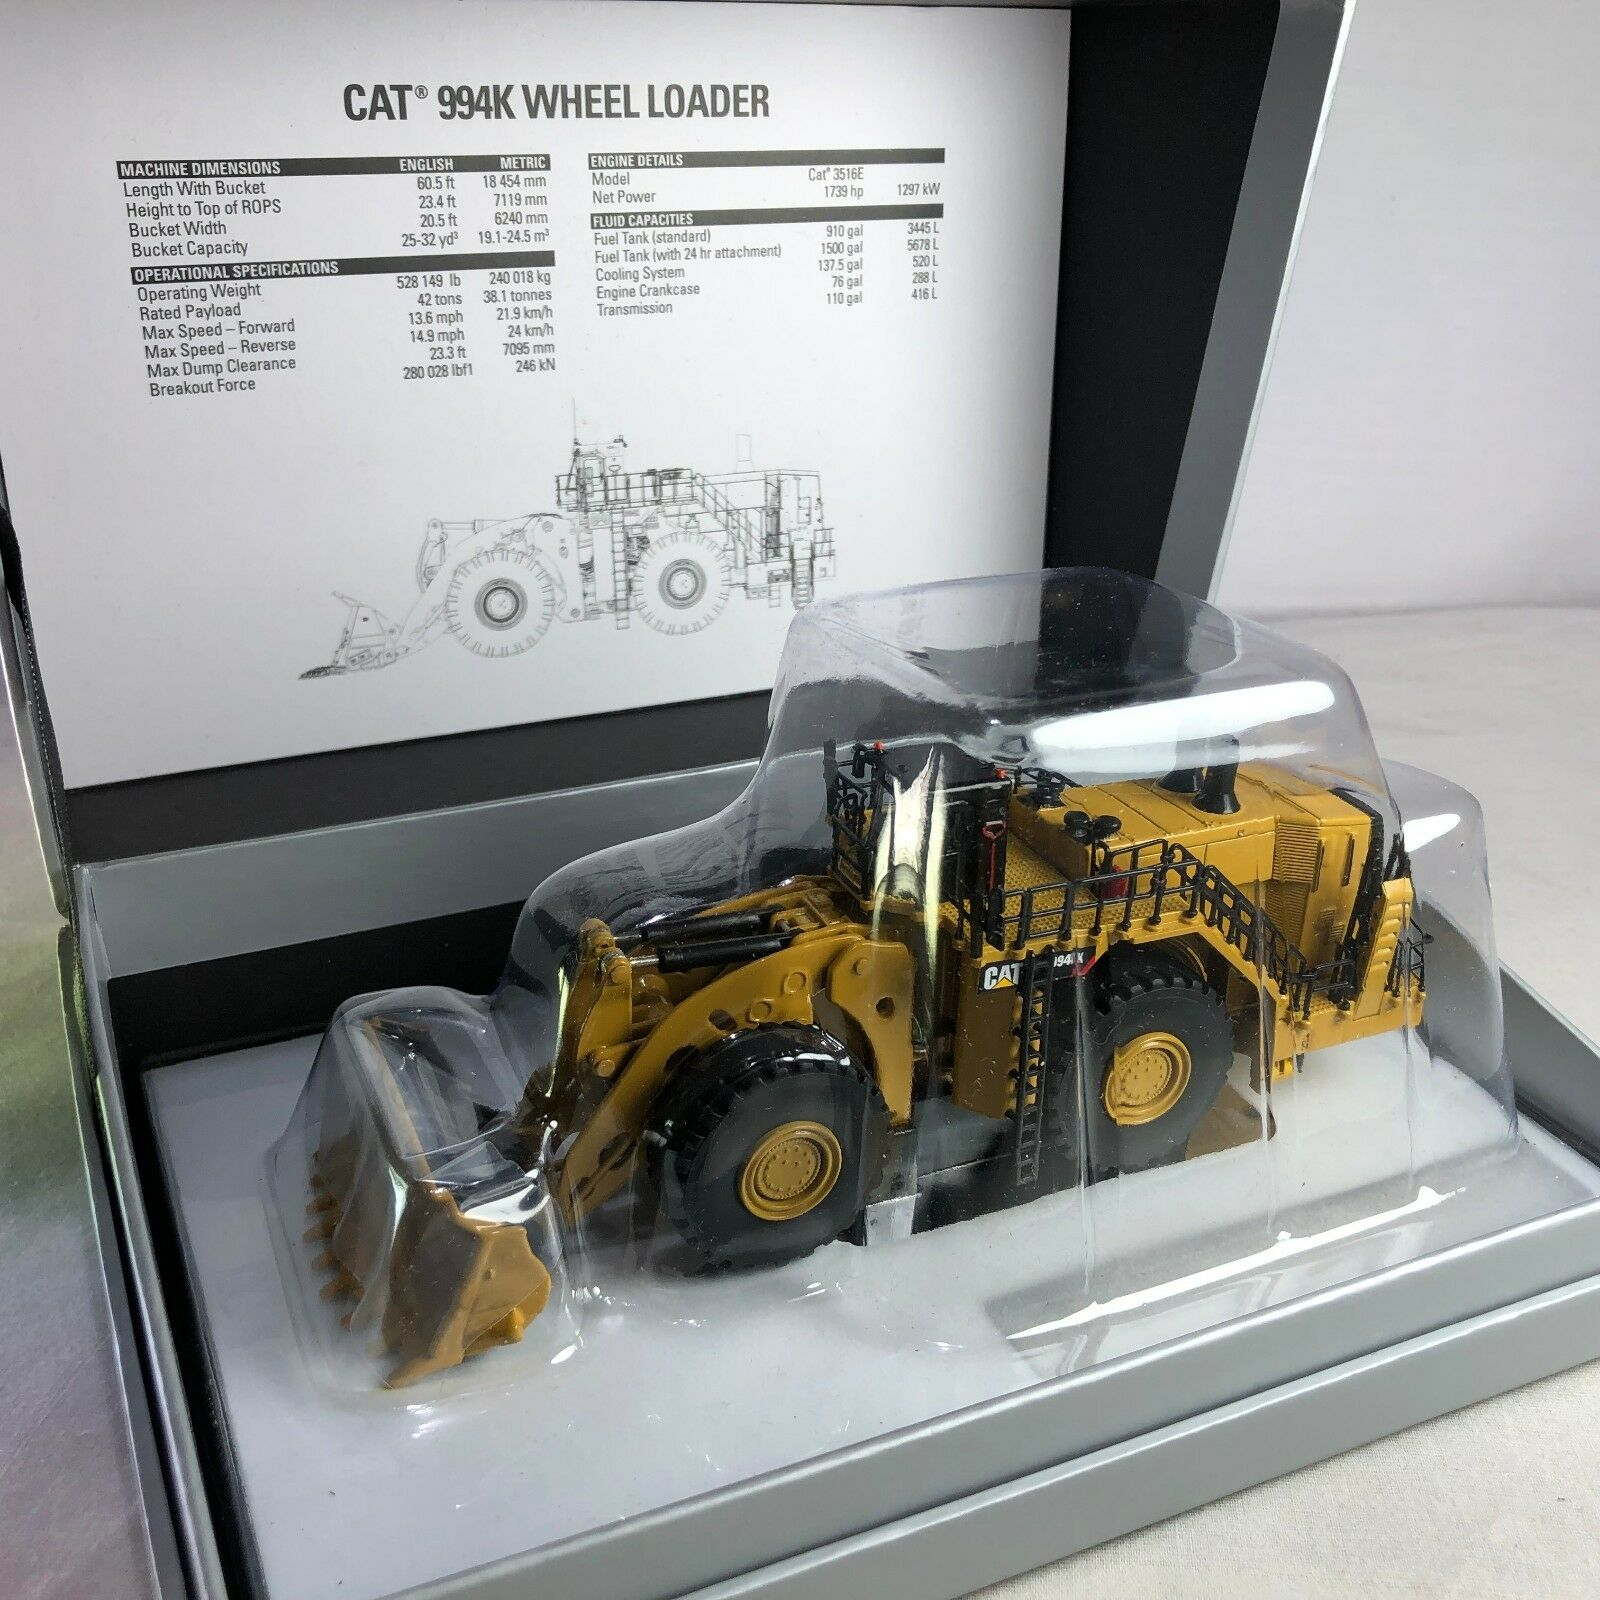 1 125 Diecast masters Cat 994K Wheel Loader 85535